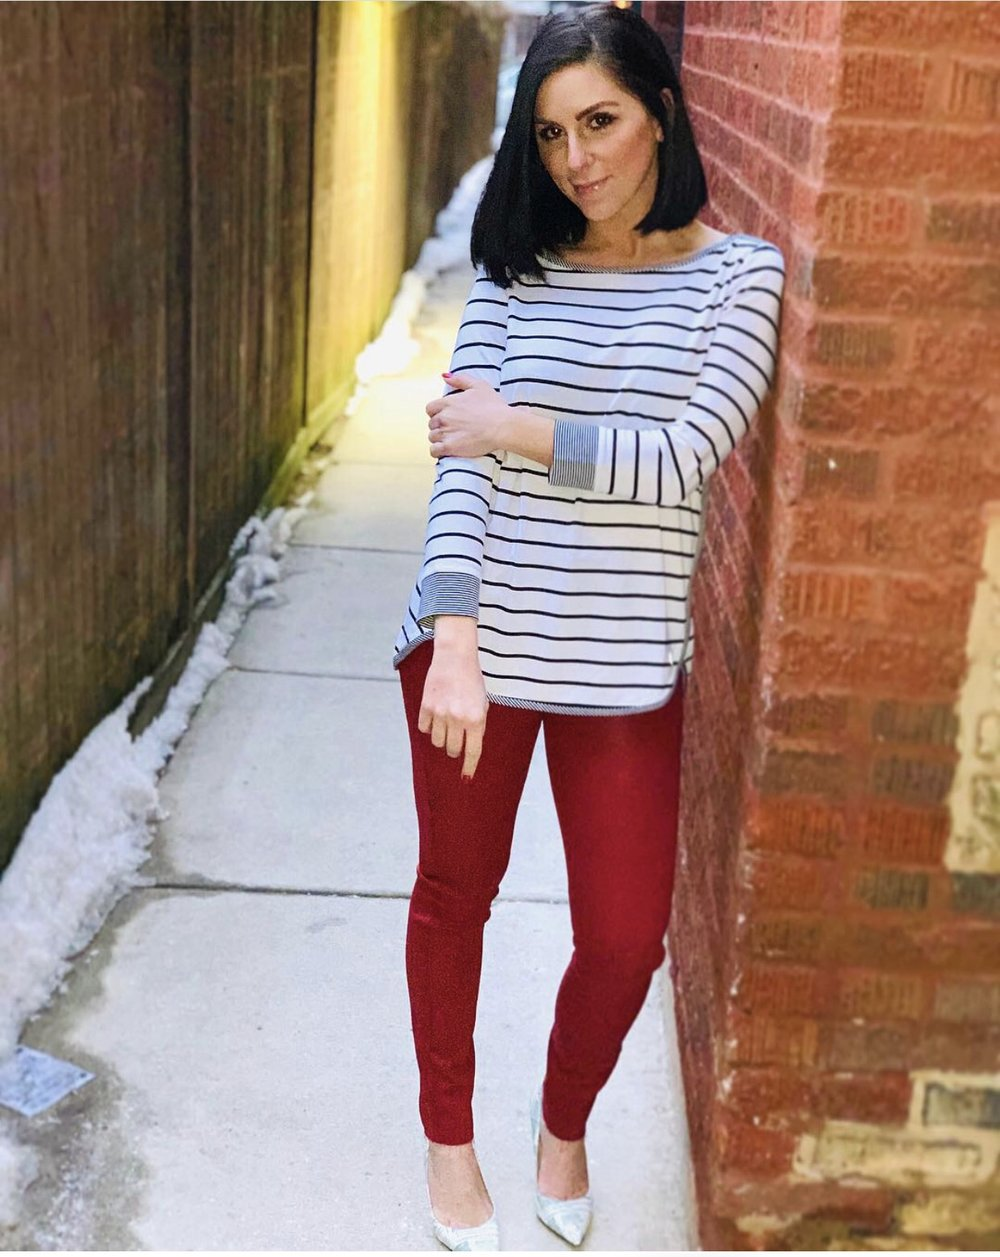 Top by     Talbots & O, The Oprah Magazine Collection    , $59.50